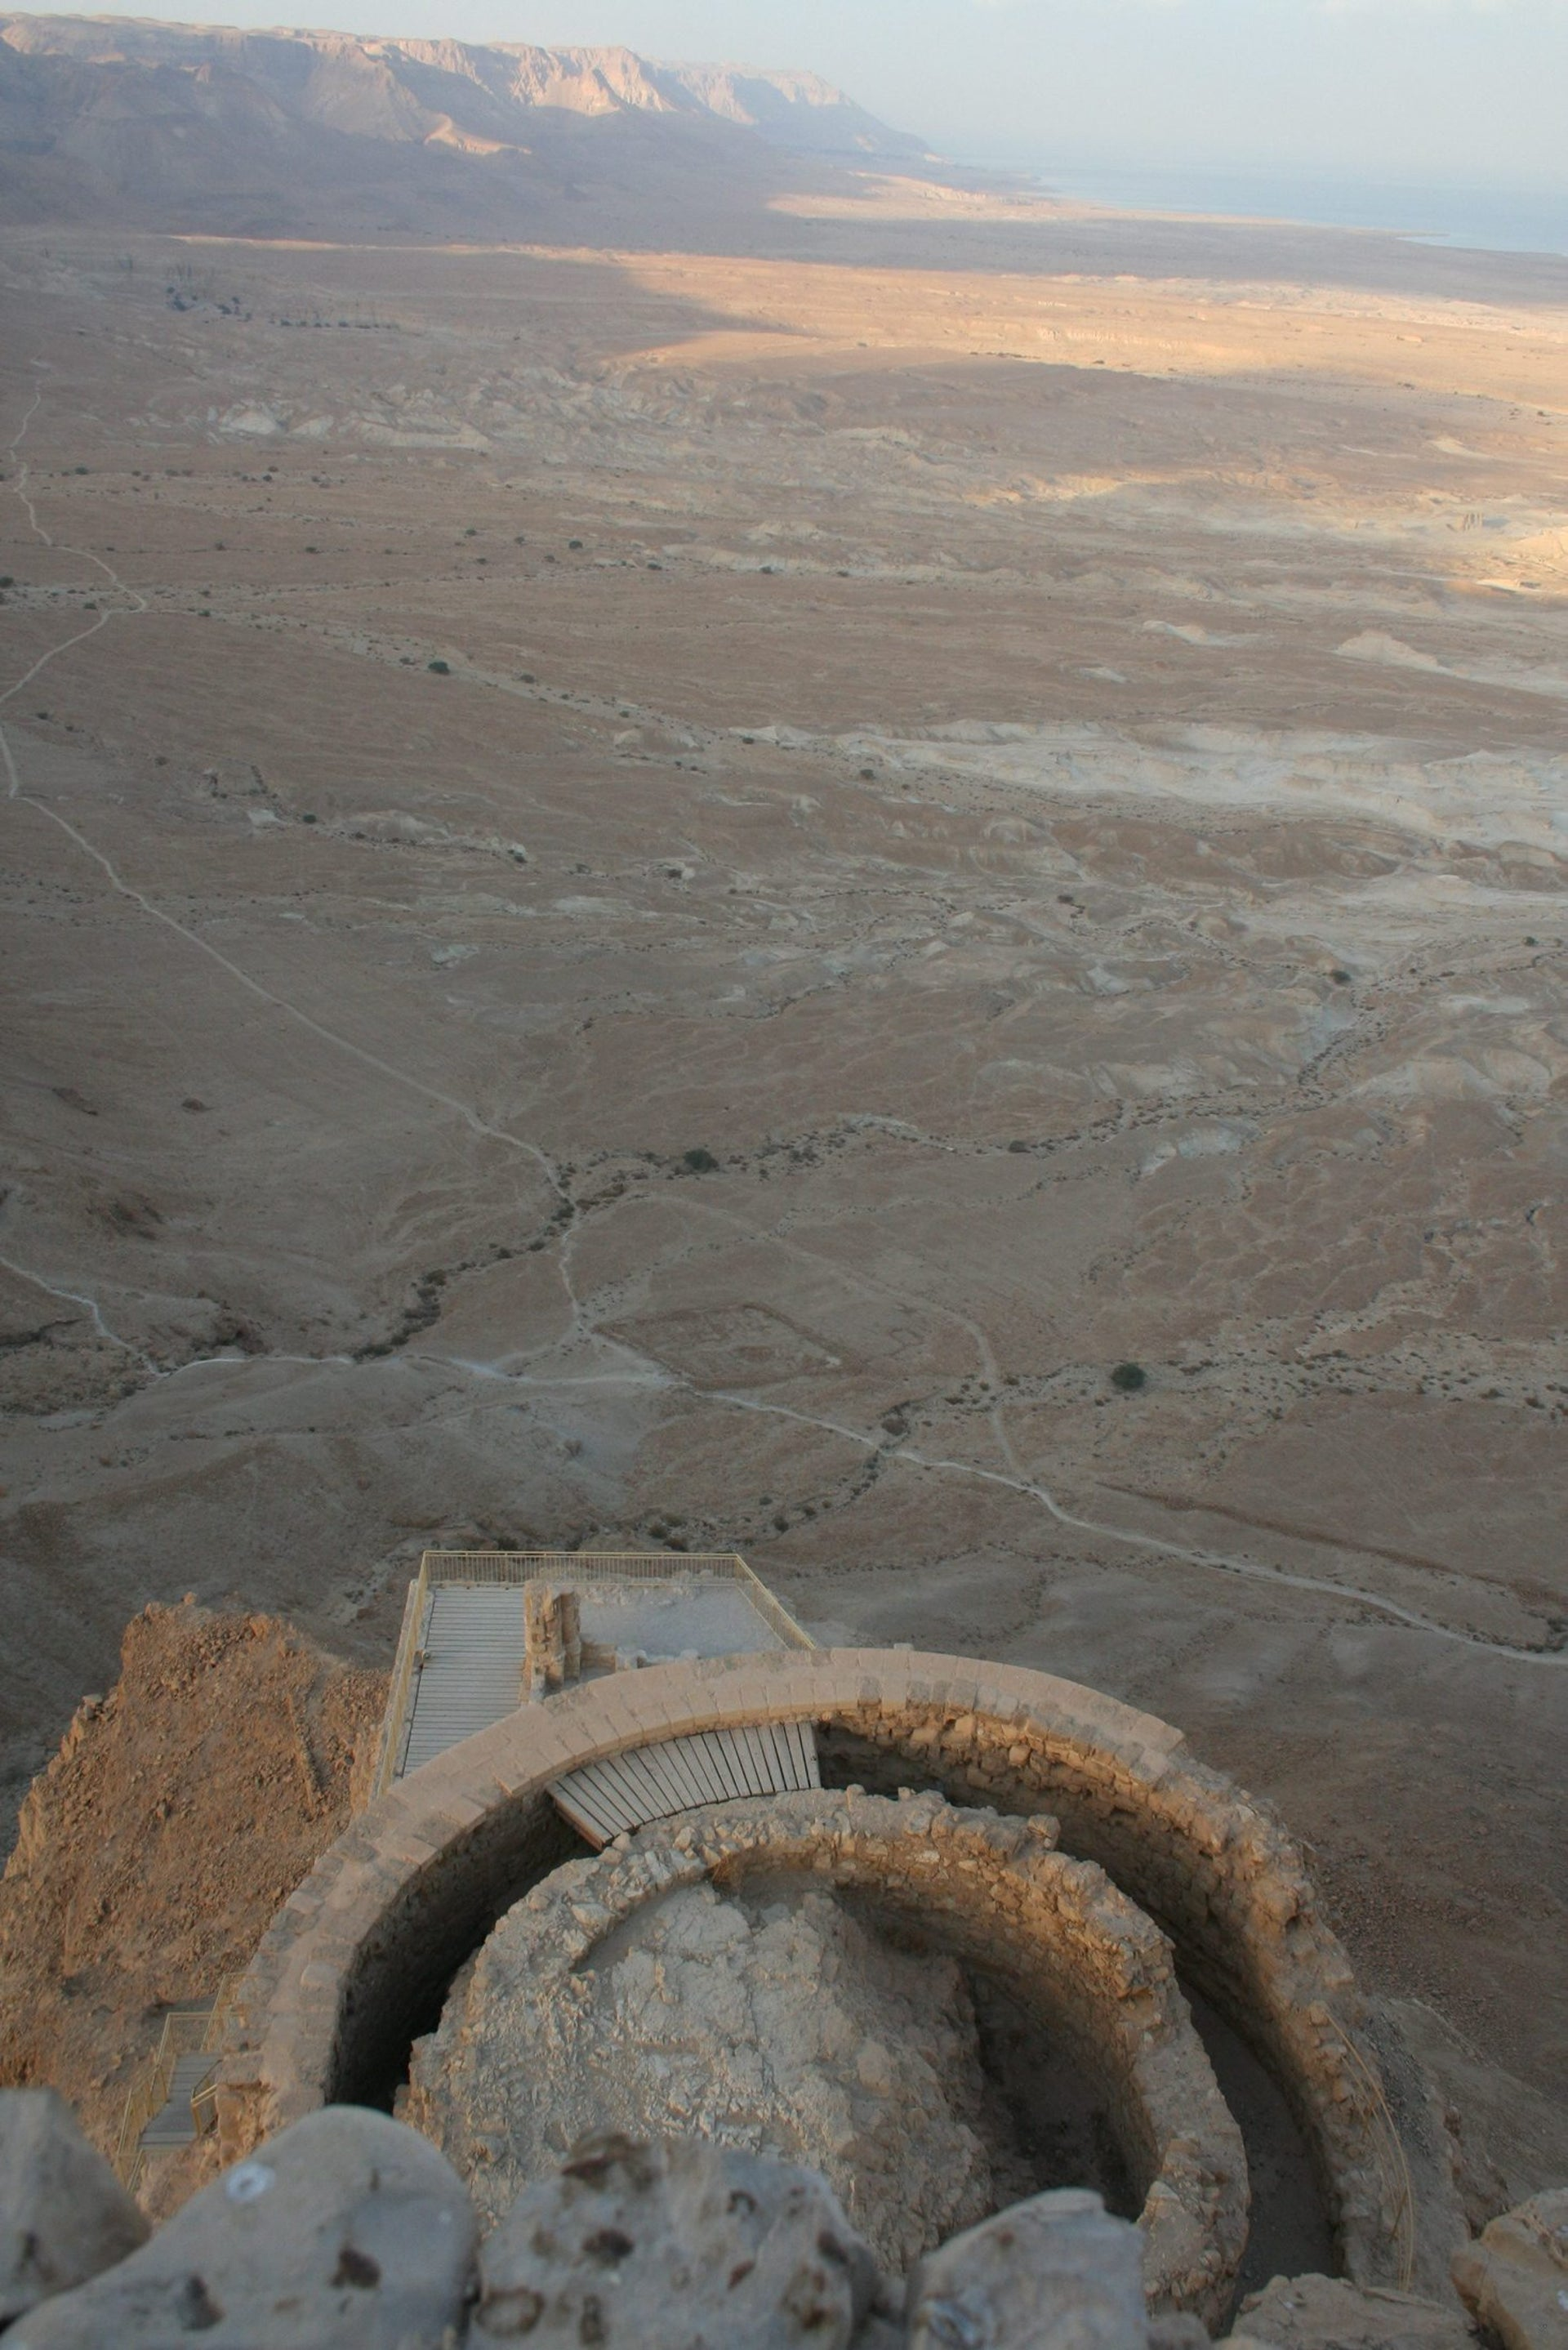 Looking down from the Masada plateau to a tower built below the fortress: The desert below is in the background.